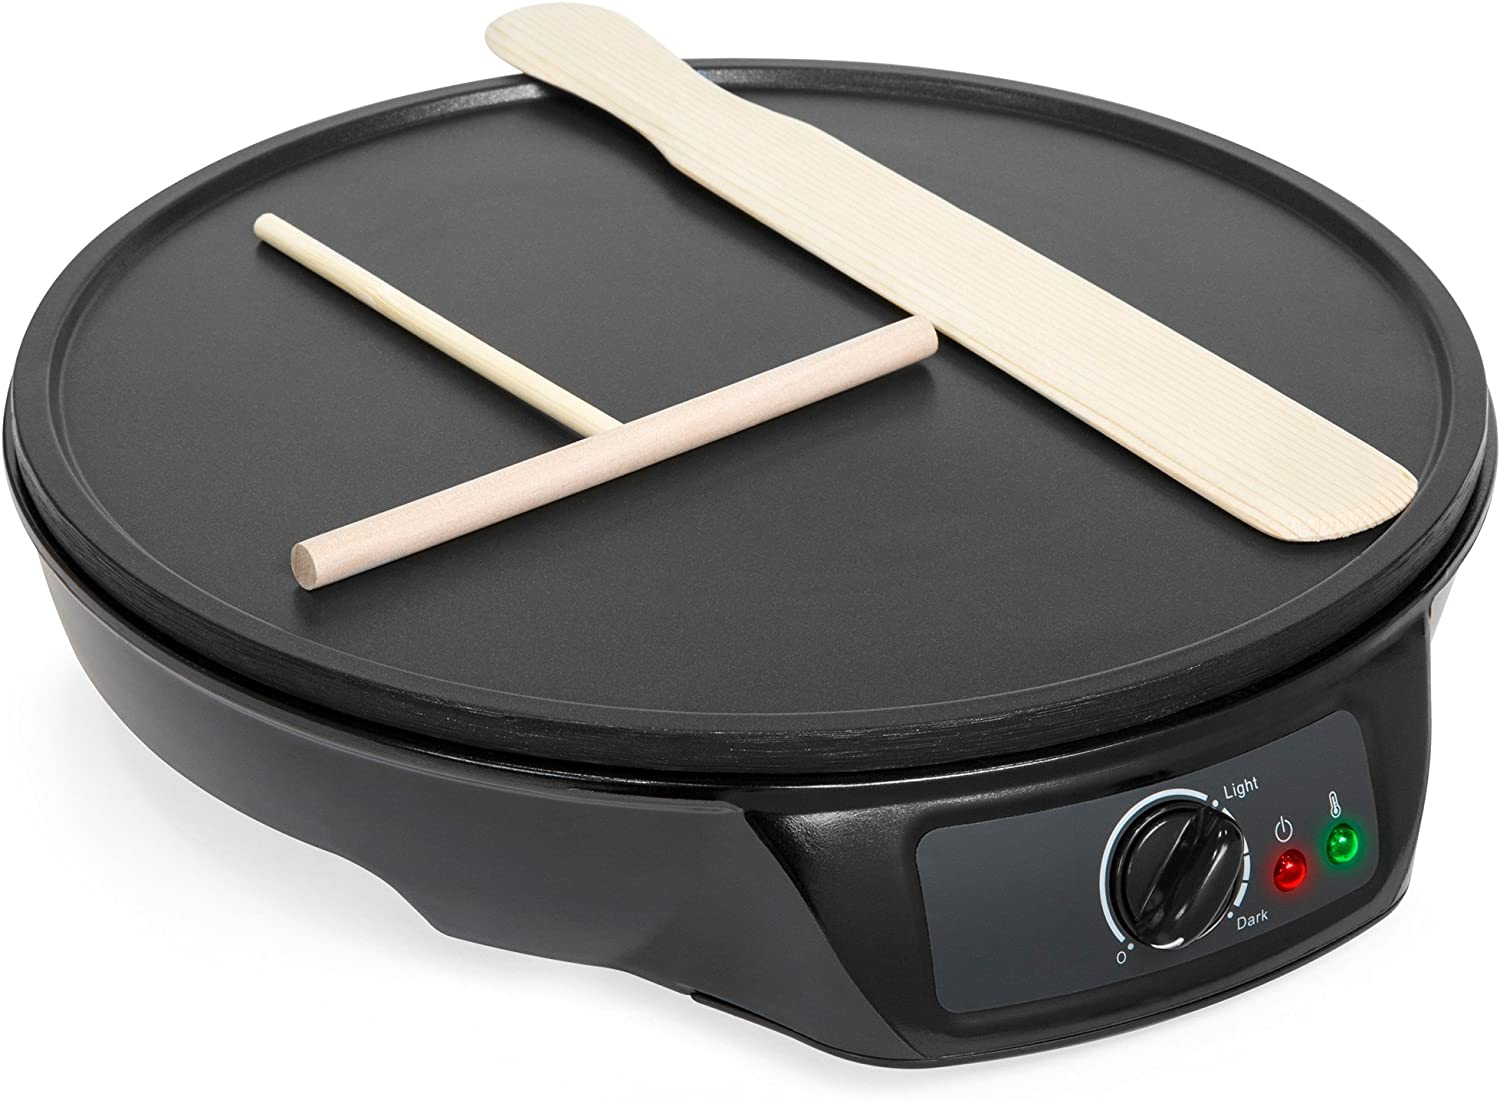 Best Choice Products Portable Non-Stick Electric Griddle Pancake Crepe Maker Pan w Wooden Spatula, Batter Spreader, Indicator Light, 12in, Black